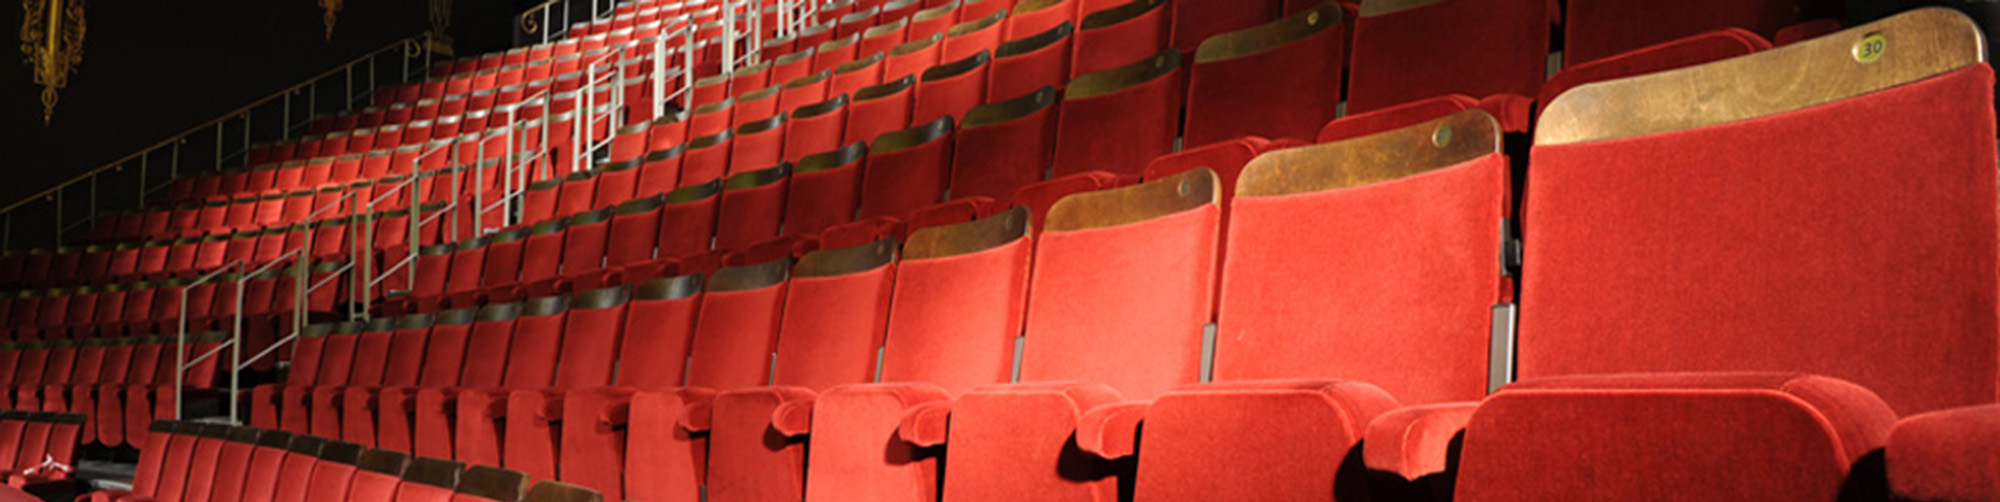 Theatre auditorium with Evertaut Ambassador theatre seating upholstered in red velvet